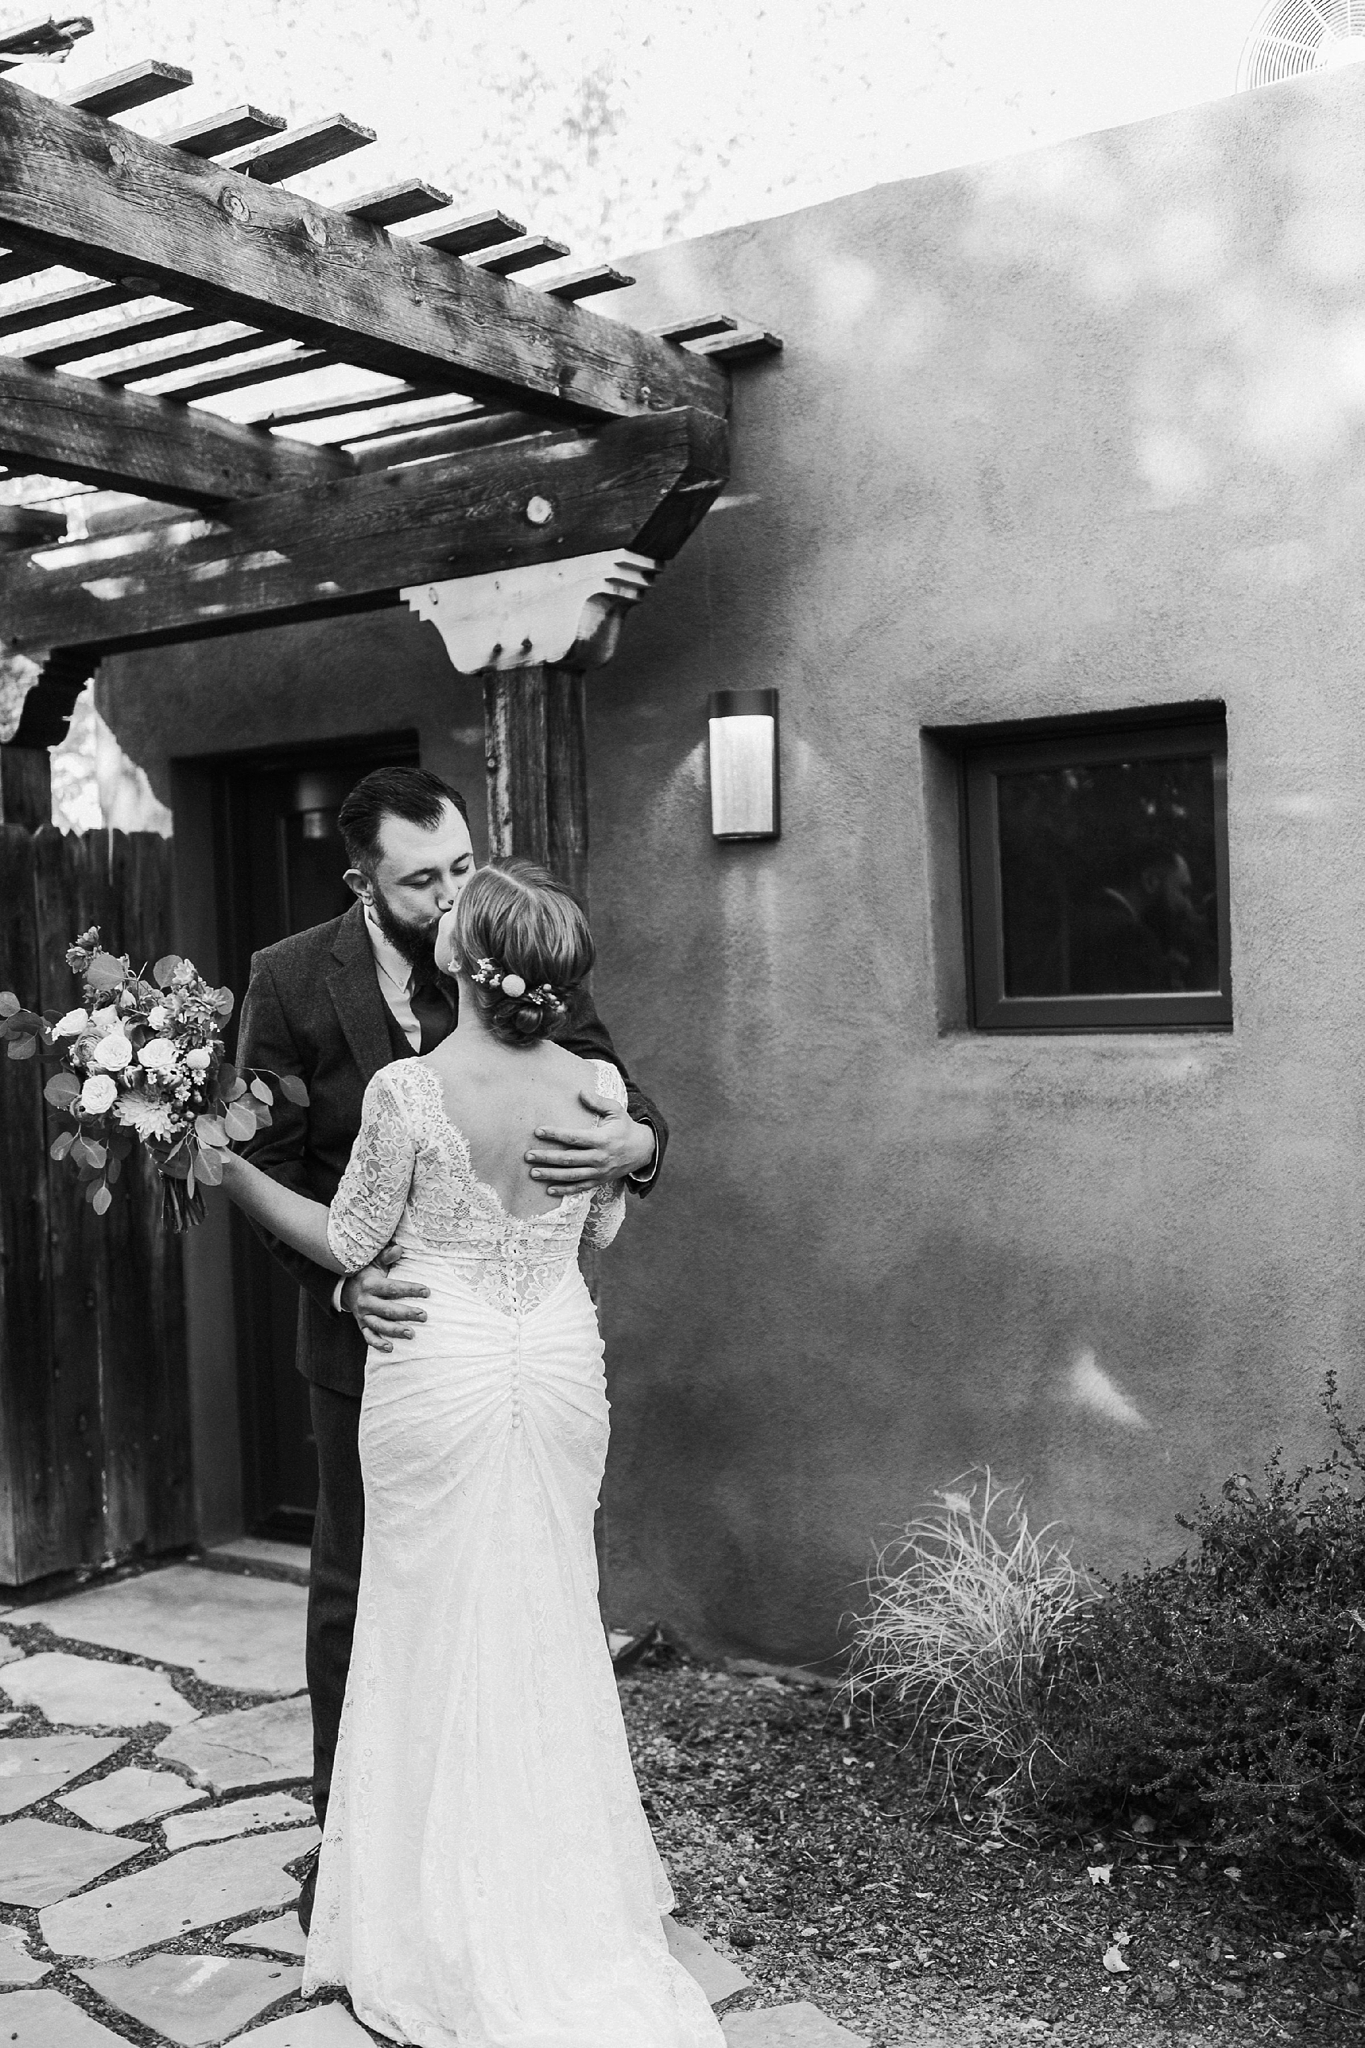 Alicia+lucia+photography+-+albuquerque+wedding+photographer+-+santa+fe+wedding+photography+-+new+mexico+wedding+photographer+-+albuquerque+wedding+-+sarabande+bed+breakfast+-+bed+and+breakfast+wedding_0025.jpg